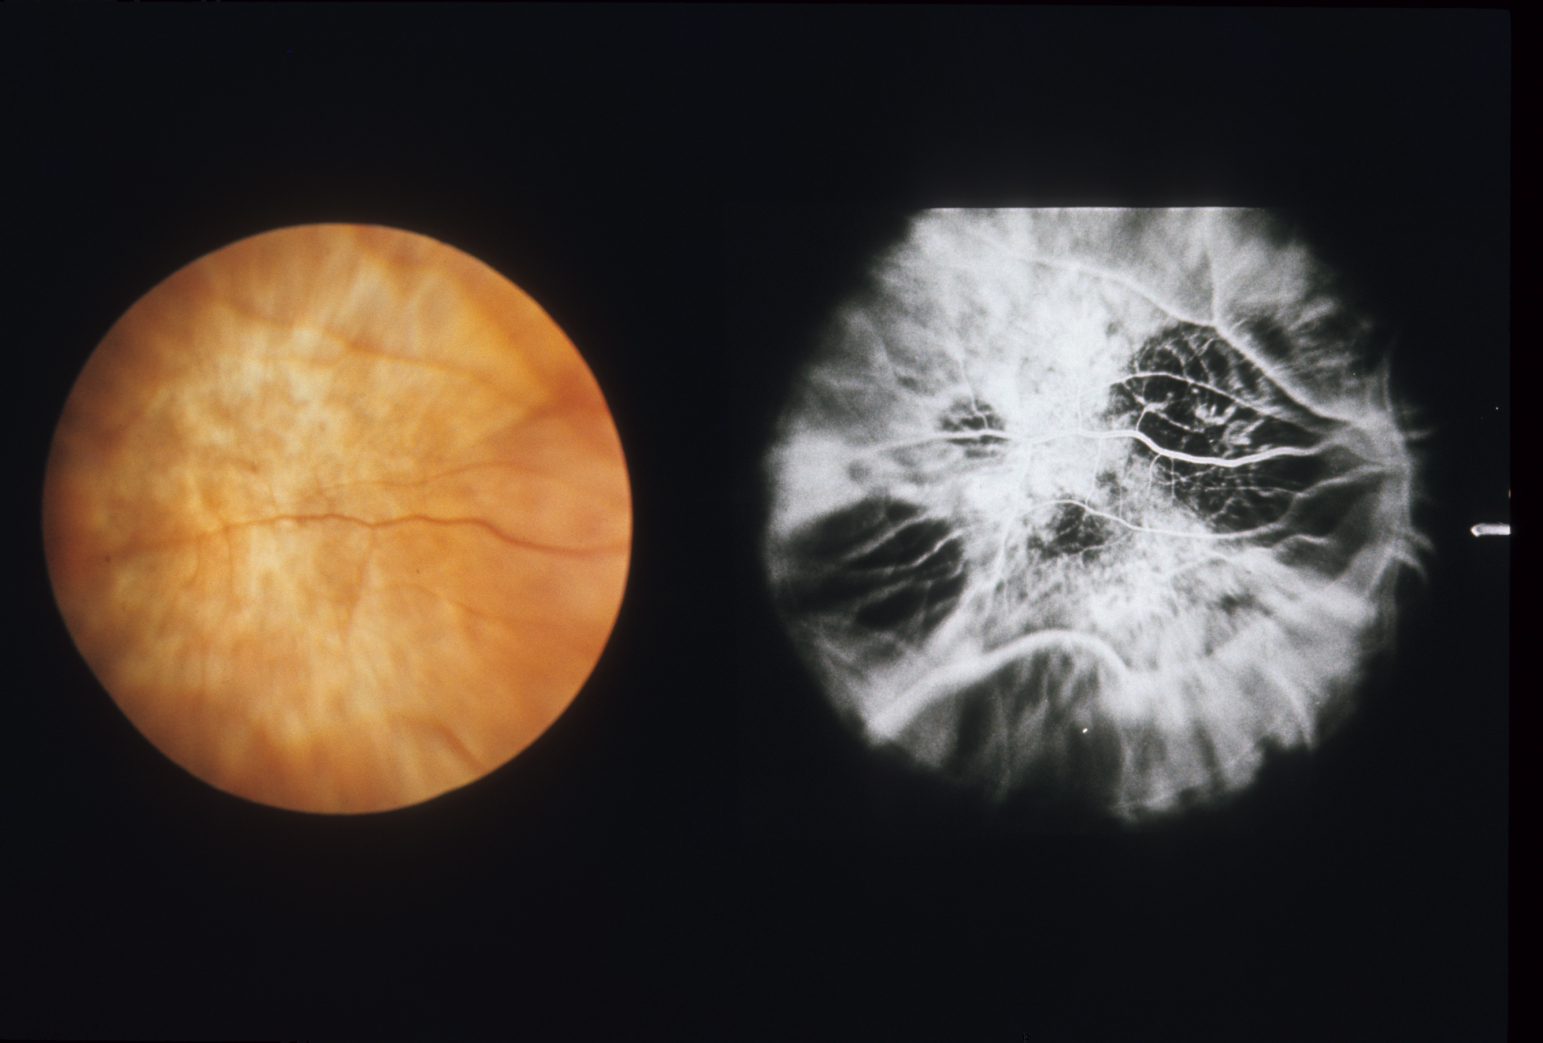 Fluorescein angiogram and fundus in nanophthalmos